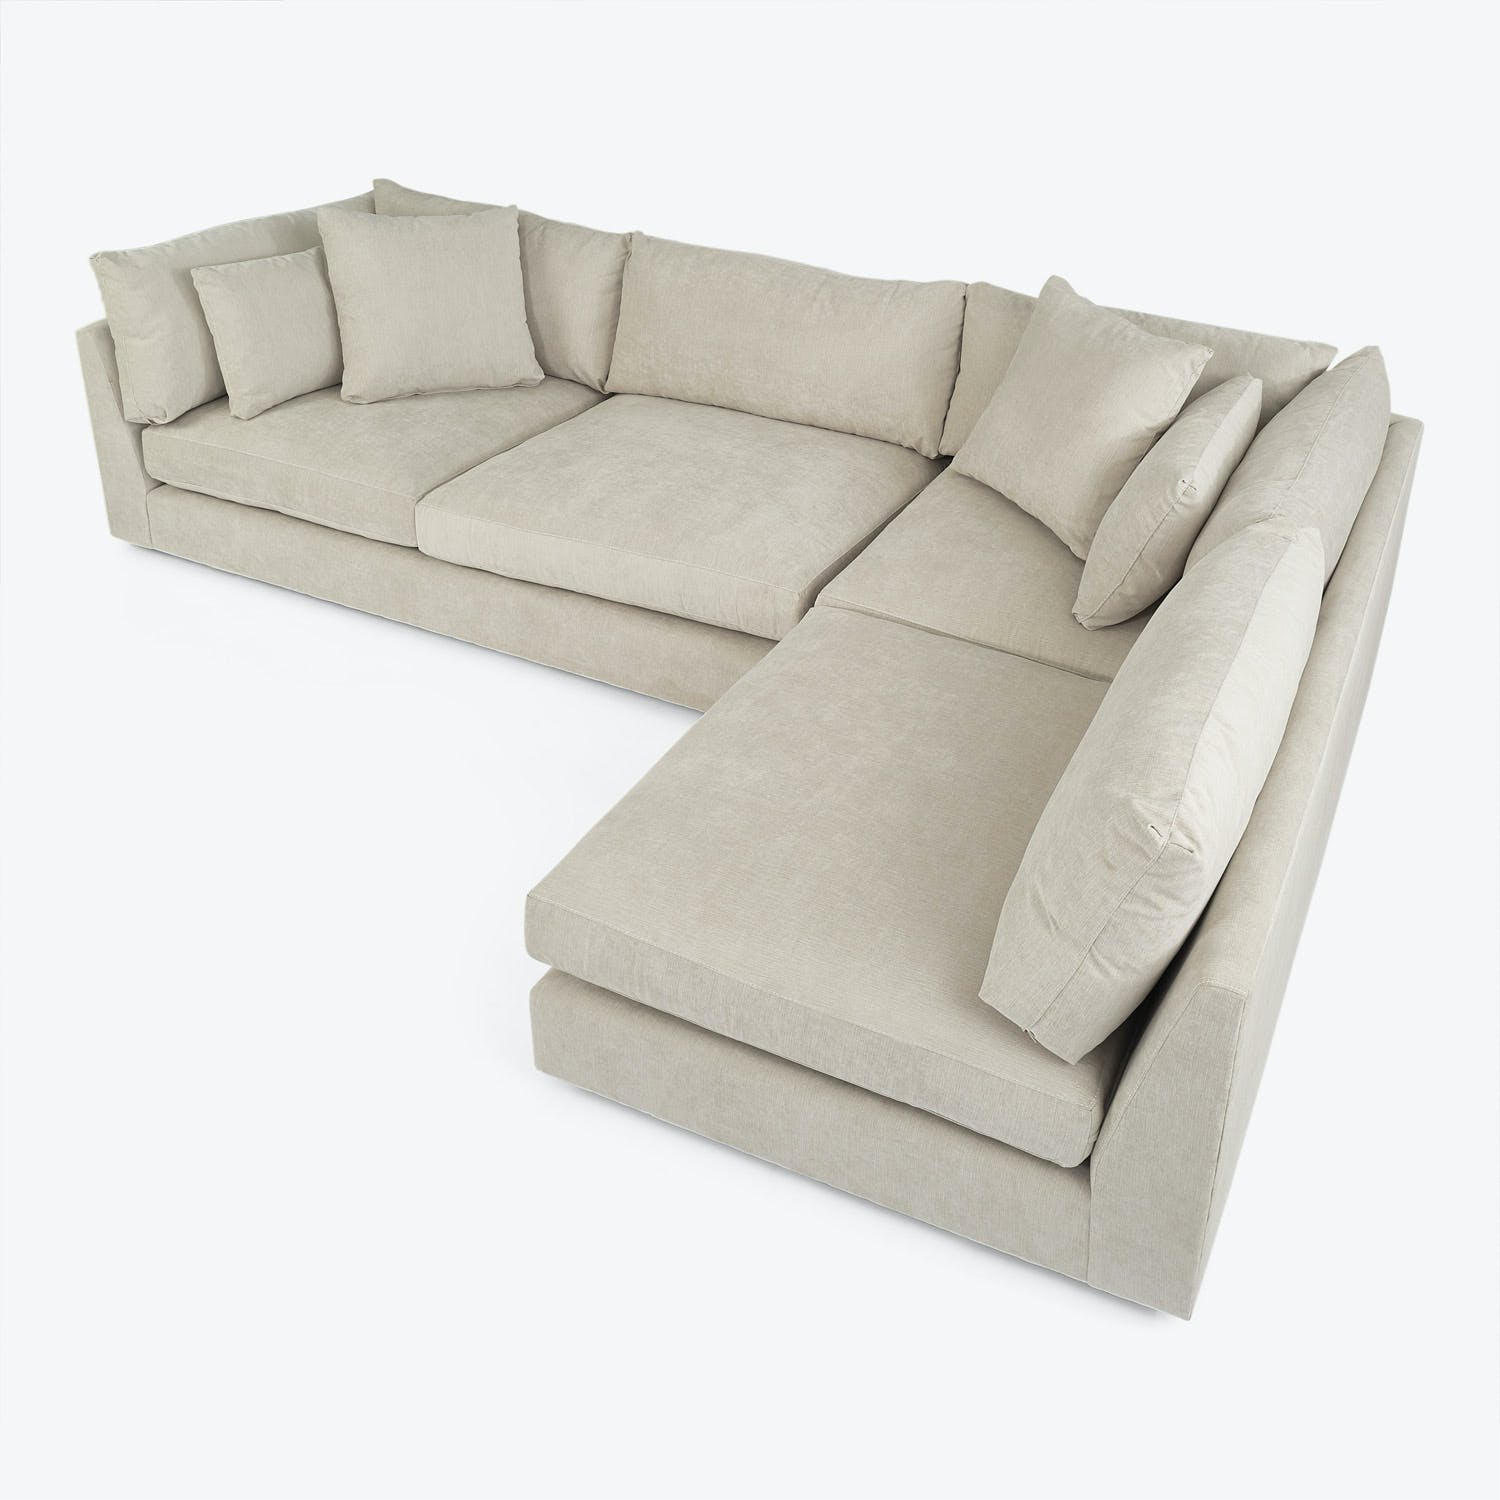 Cobble Hill Delancey Sectional Left Arm Facing